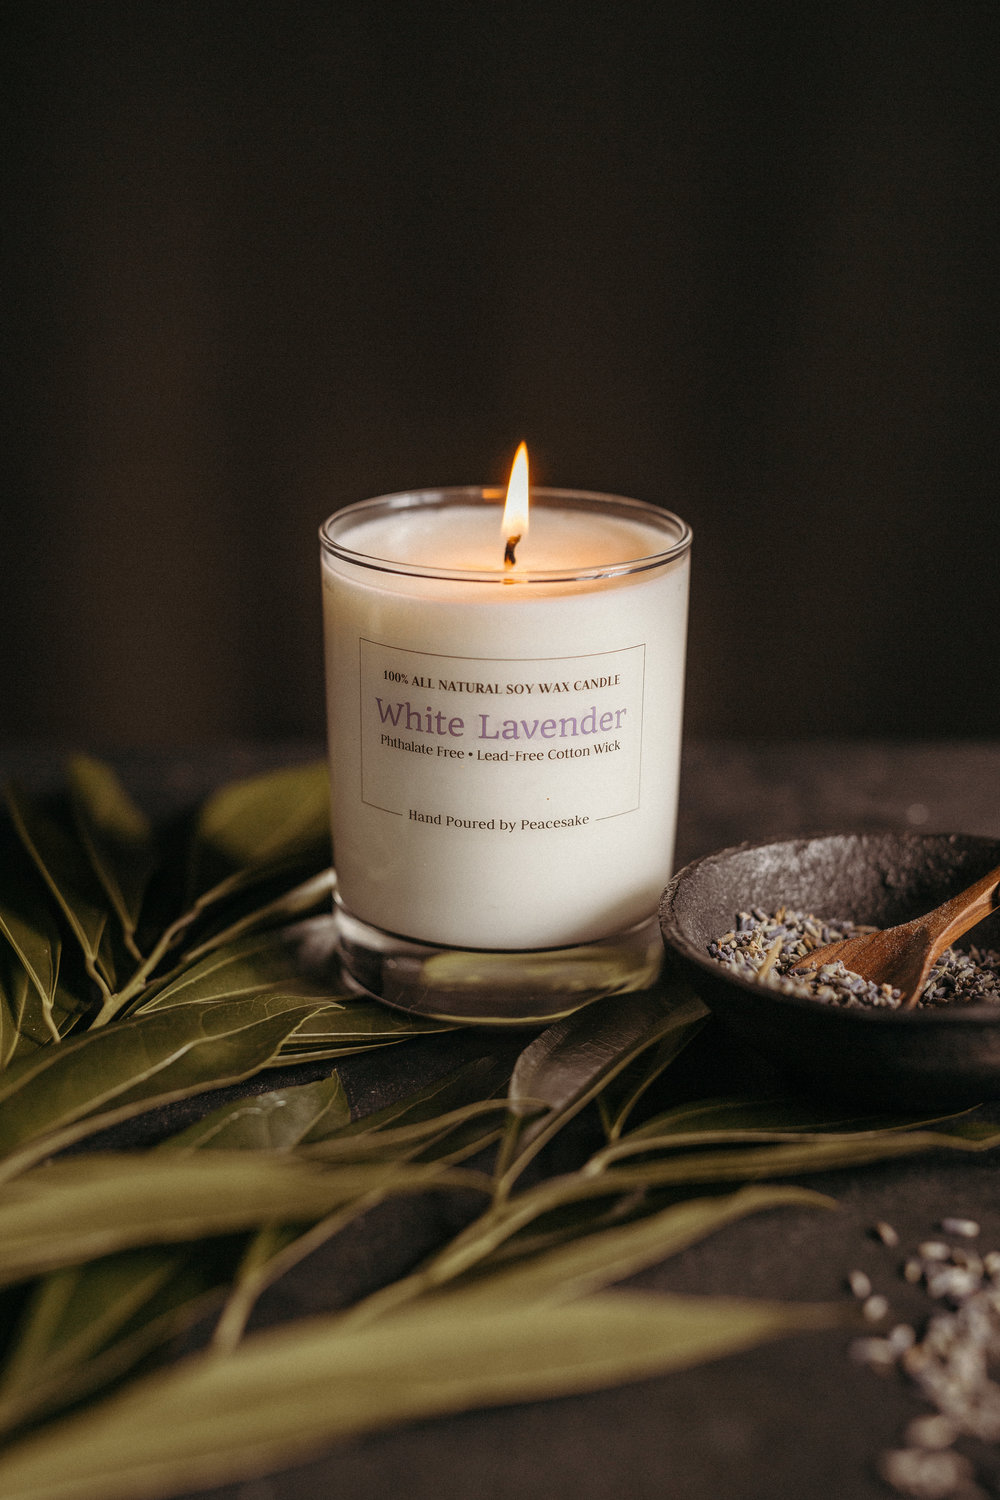 lavender-birch-soy-candle-natural-cotton-wick-phthalate-free-lead-free-fresh-woods-pine.jpg